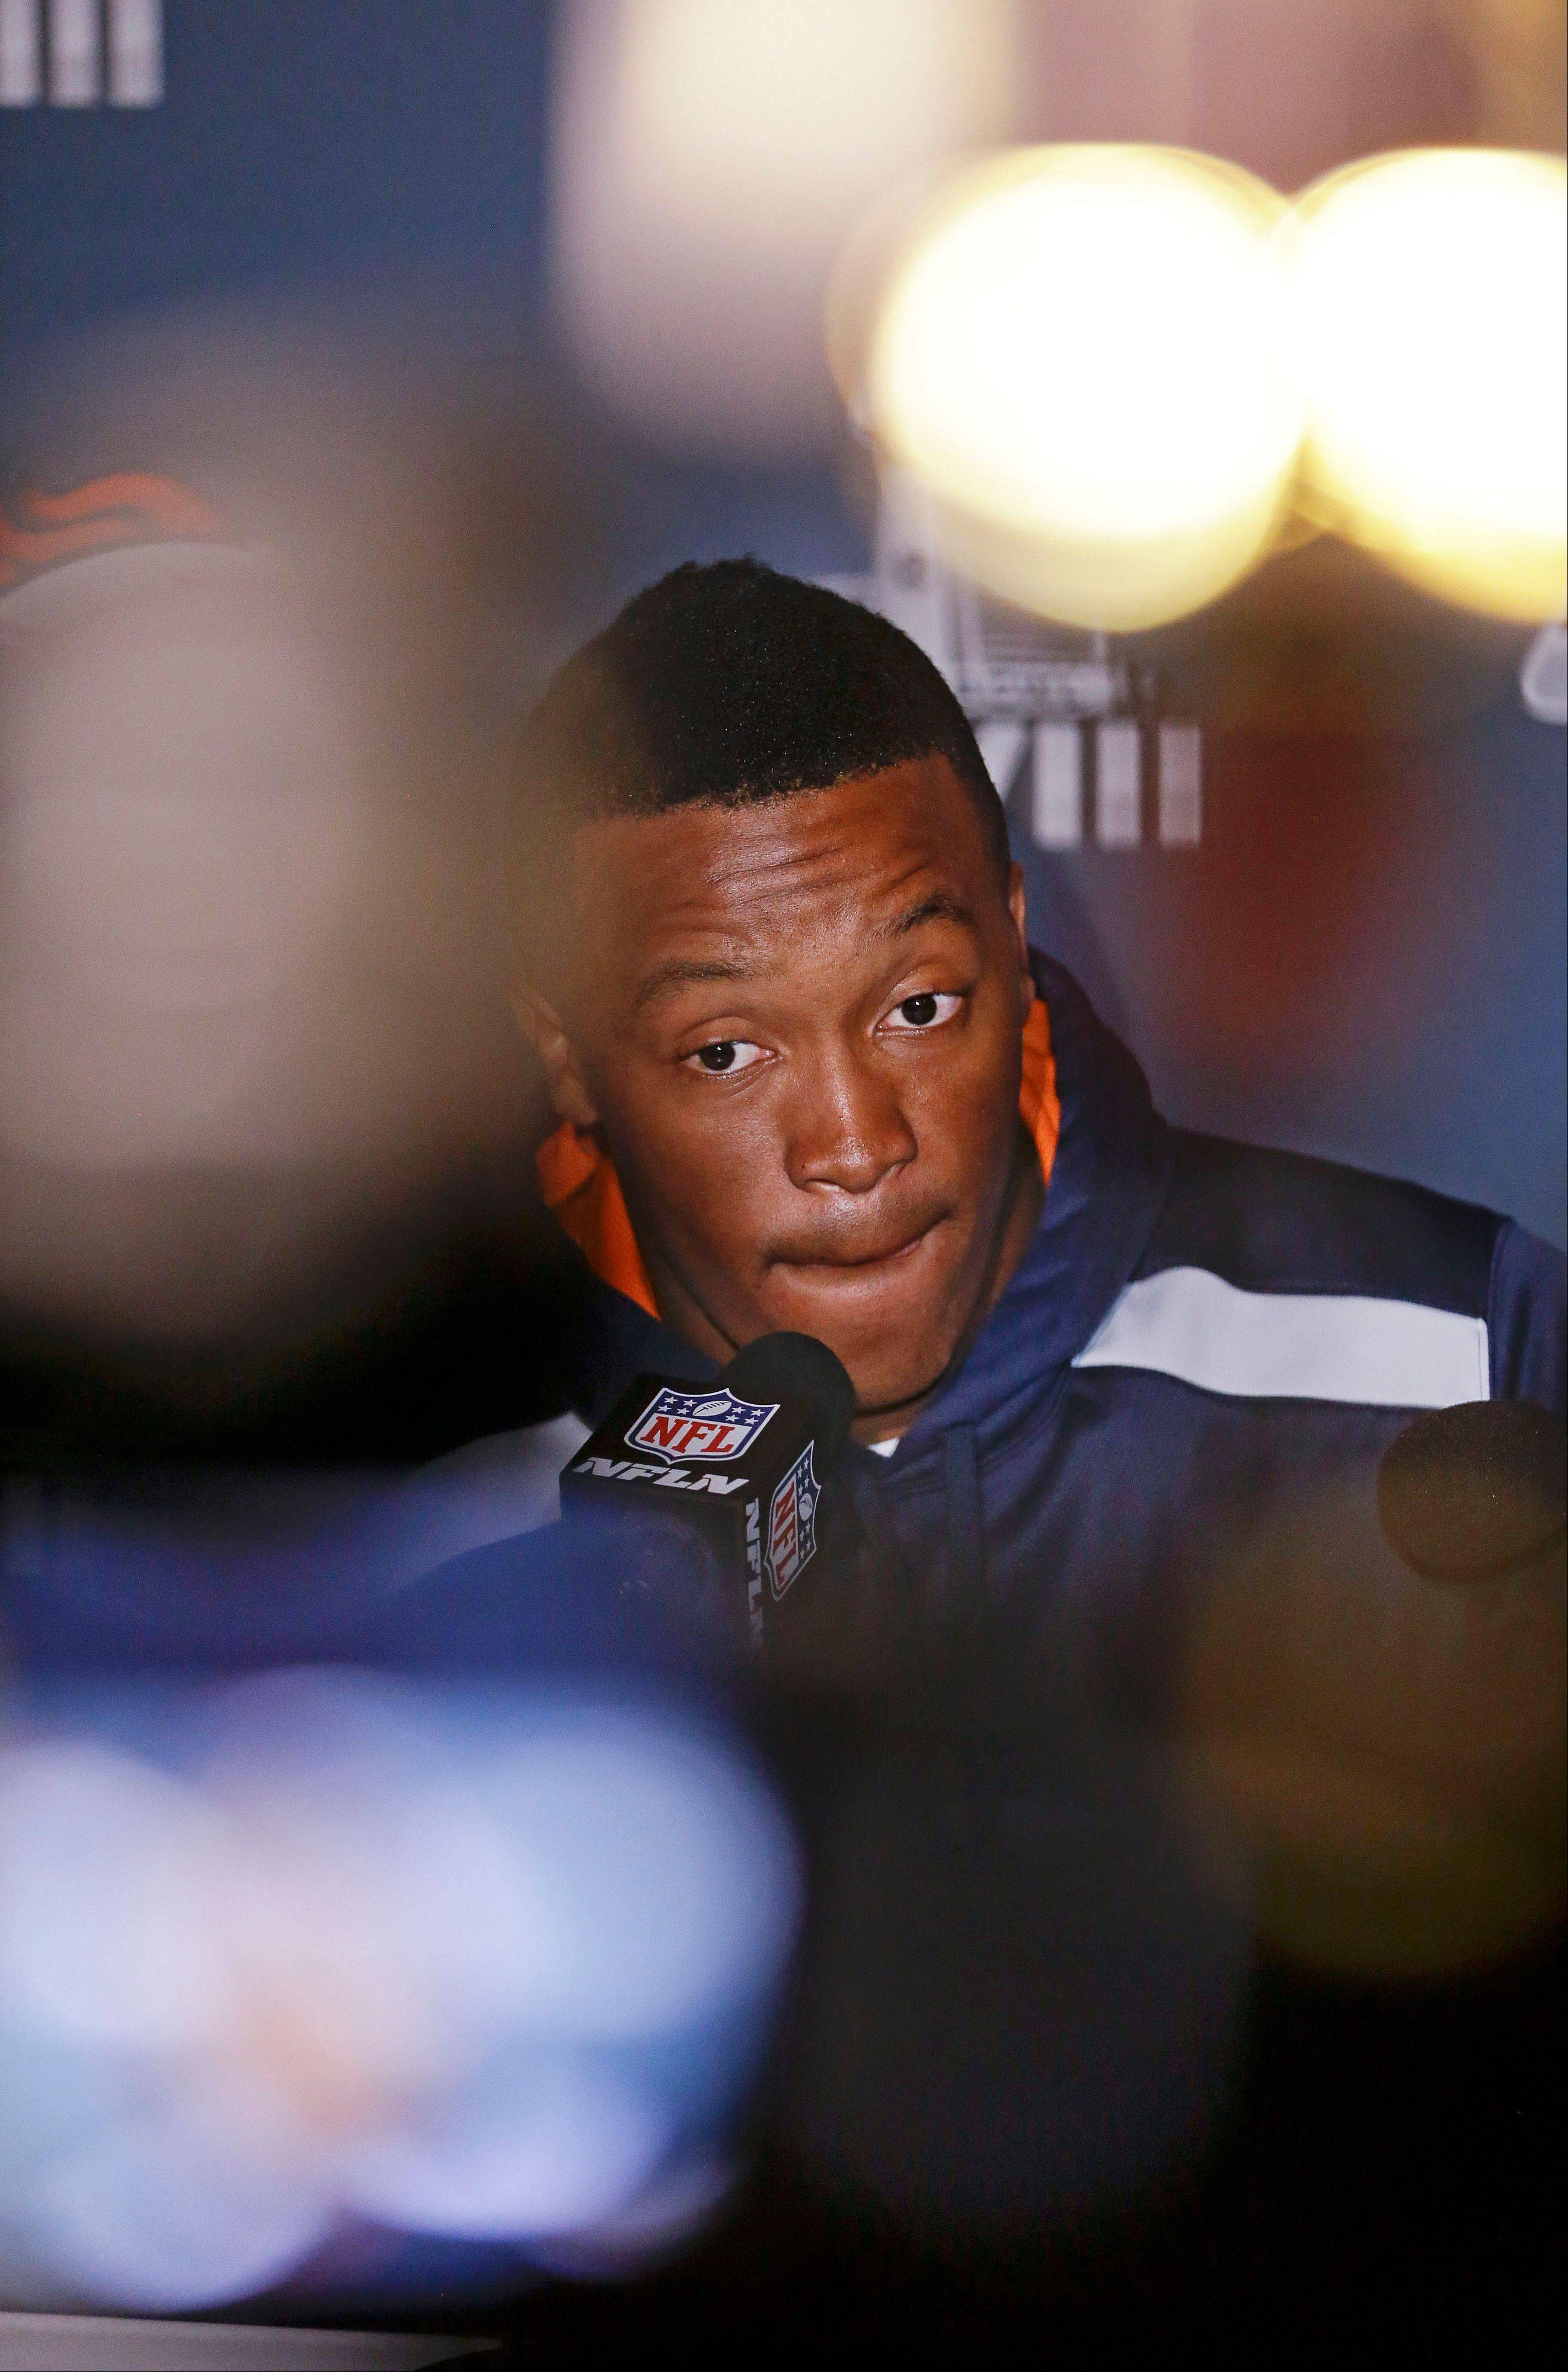 Denver Broncos wide receiver Demaryius Thomas is seen between lights and cameras as he talks with reporters during a news conference Monday, Jan. 27, 2014, in Jersey City, N.J. The Broncos are scheduled to play the Seattle Seahawks in the NFL Super Bowl XLVIII football game Sunday, Feb. 2, in East Rutherford, N.J.